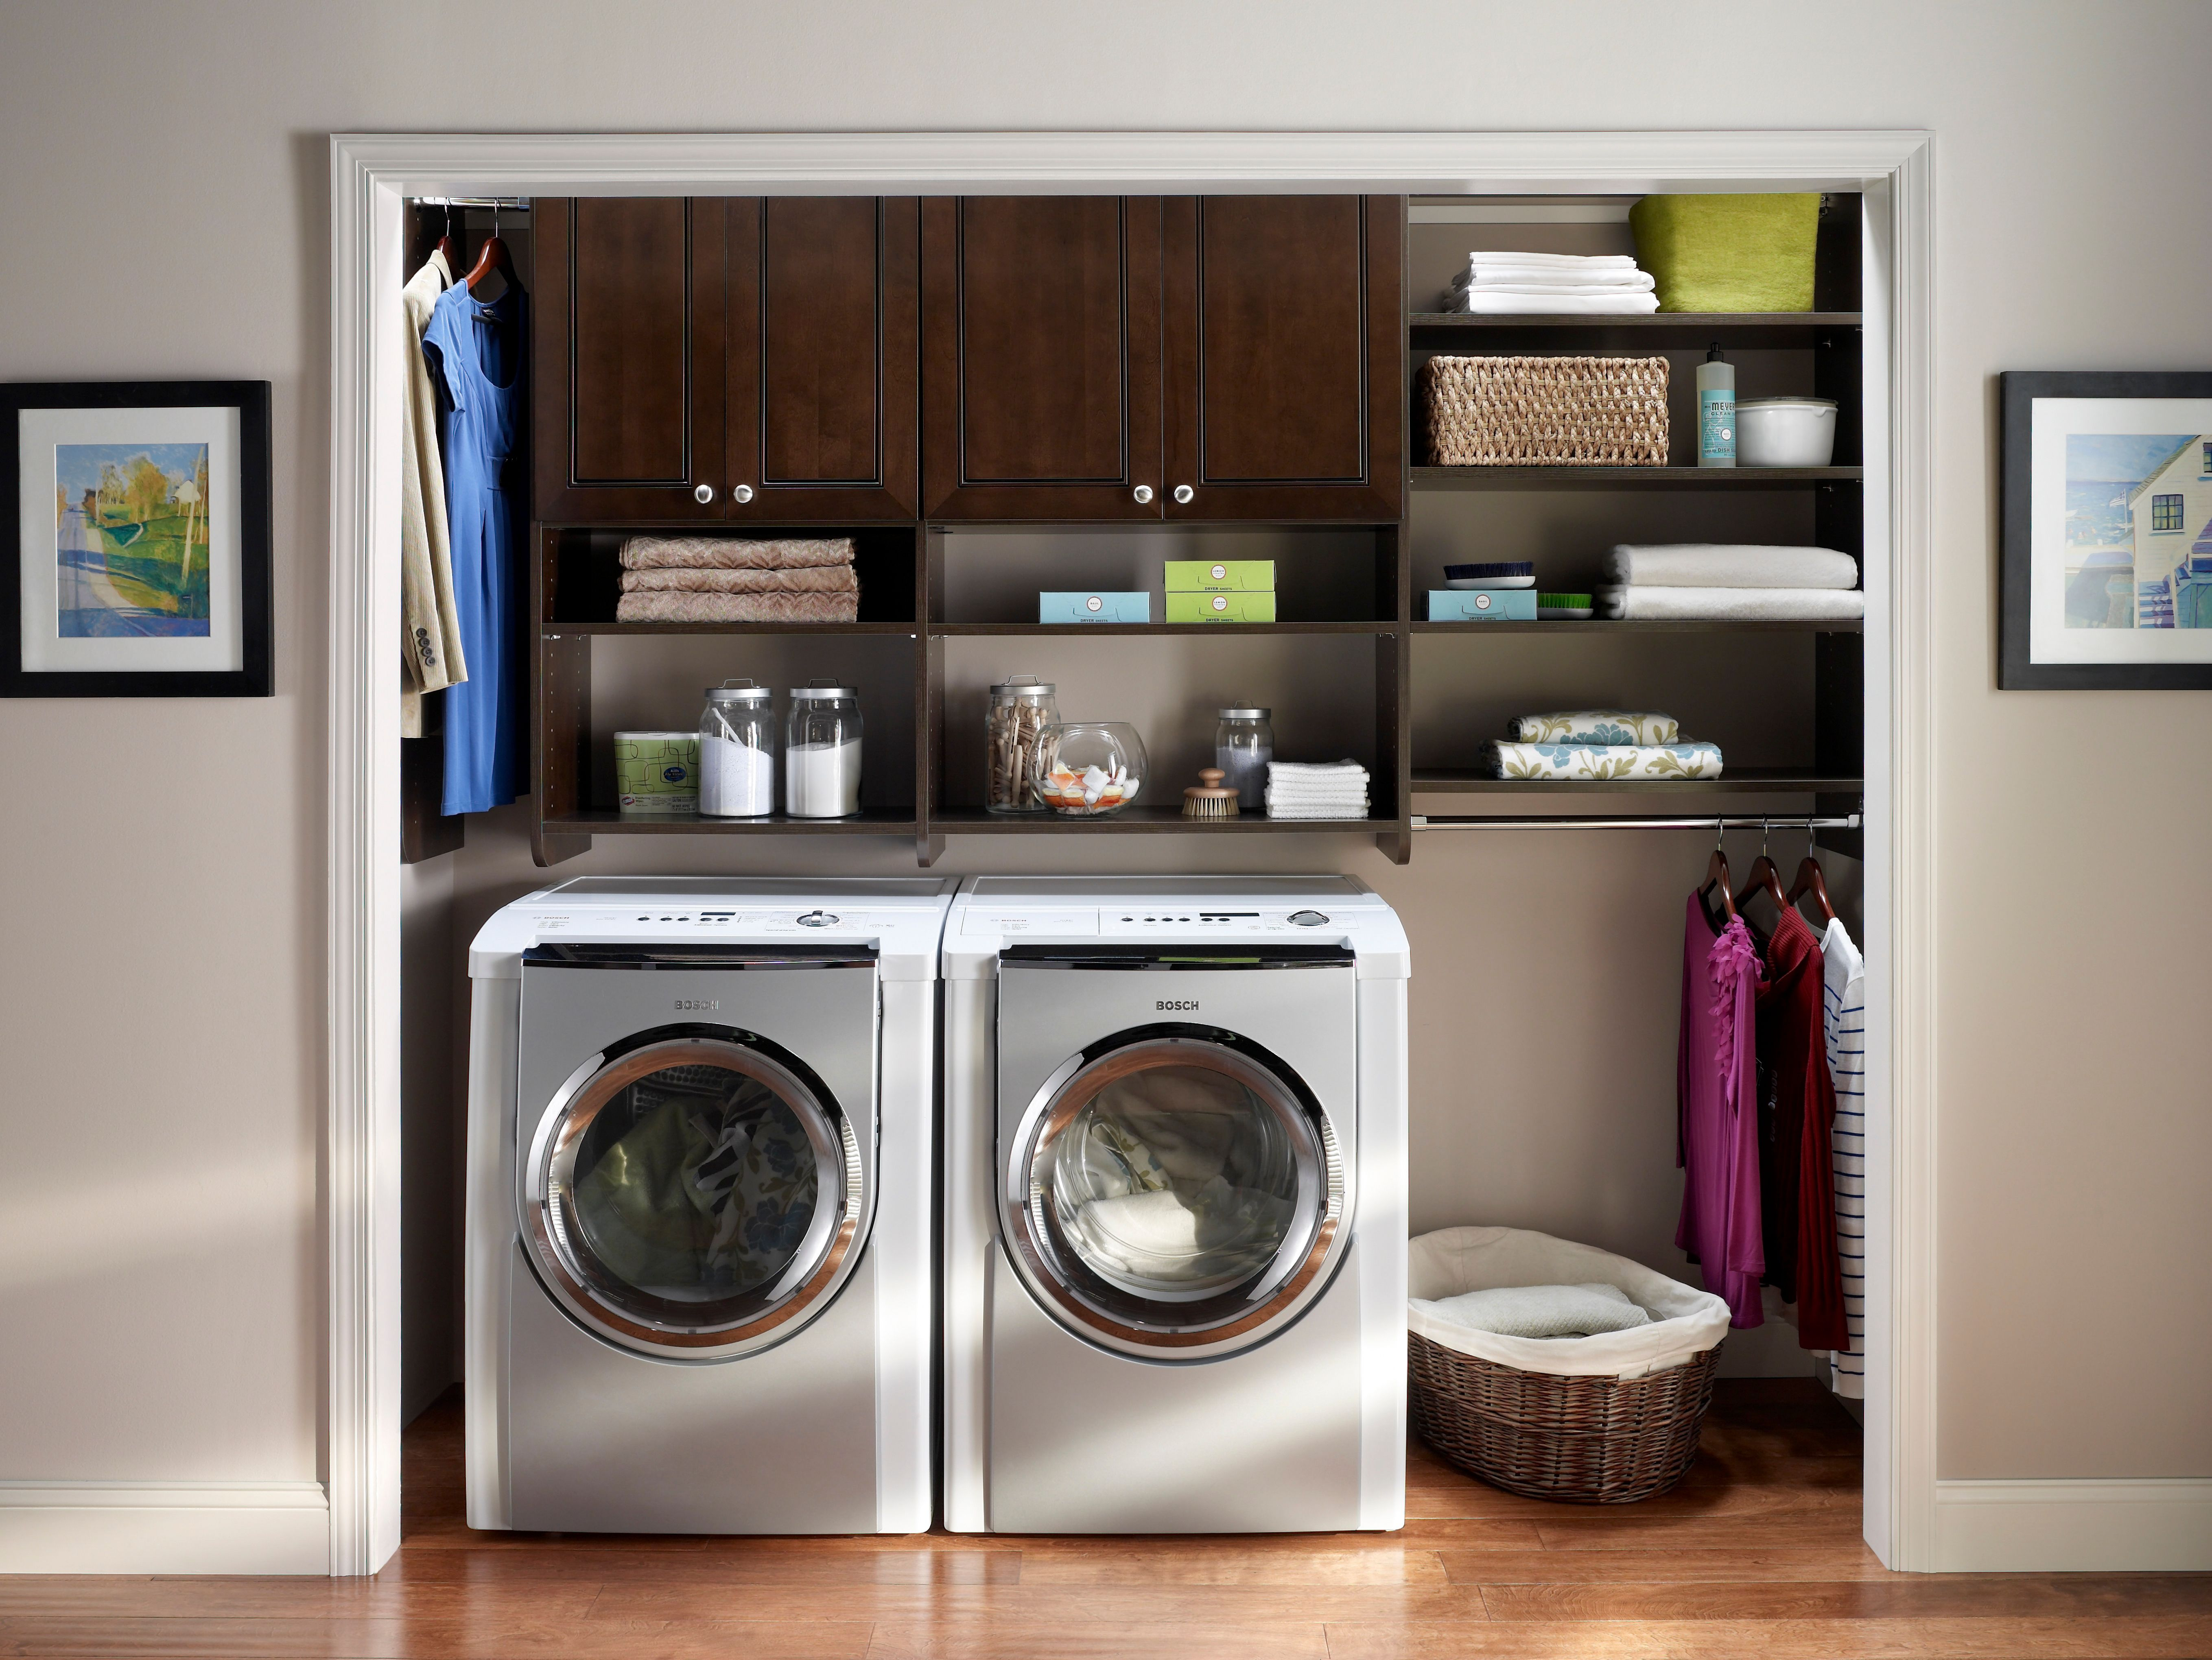 No Laundry Room No Worries Create Your Own Laundry Space With Mastersuite From Closetmaid Laundry Room Storage Small Laundry Space Laundry Room Closet